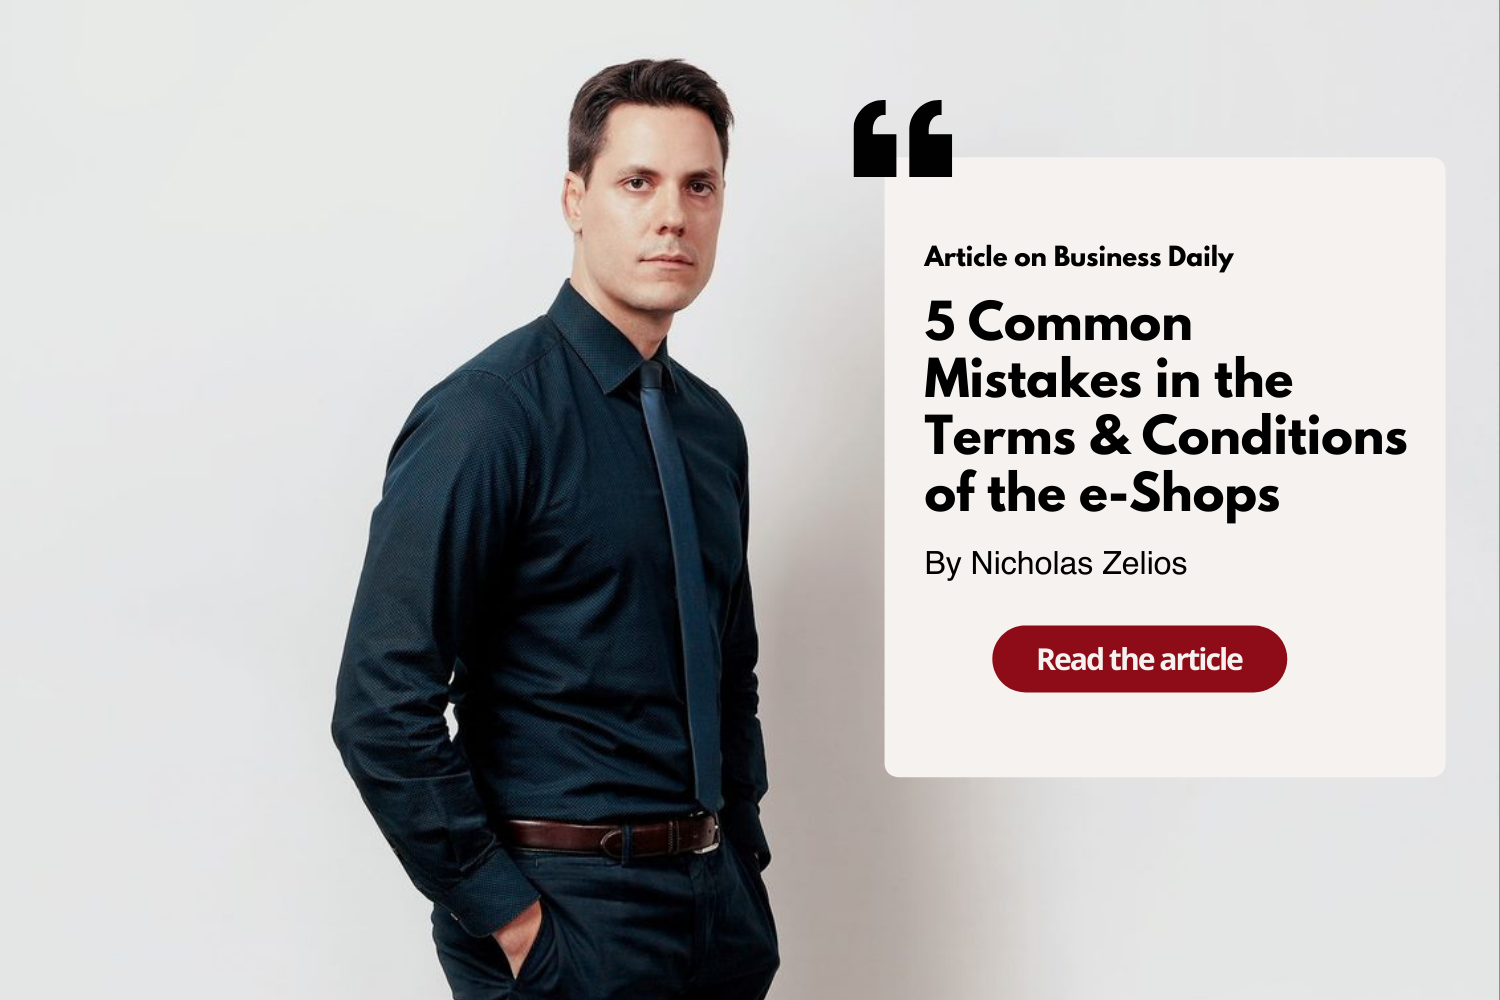 Article: 5 Common Mistakes in Terms & Conditions of the e-Shops